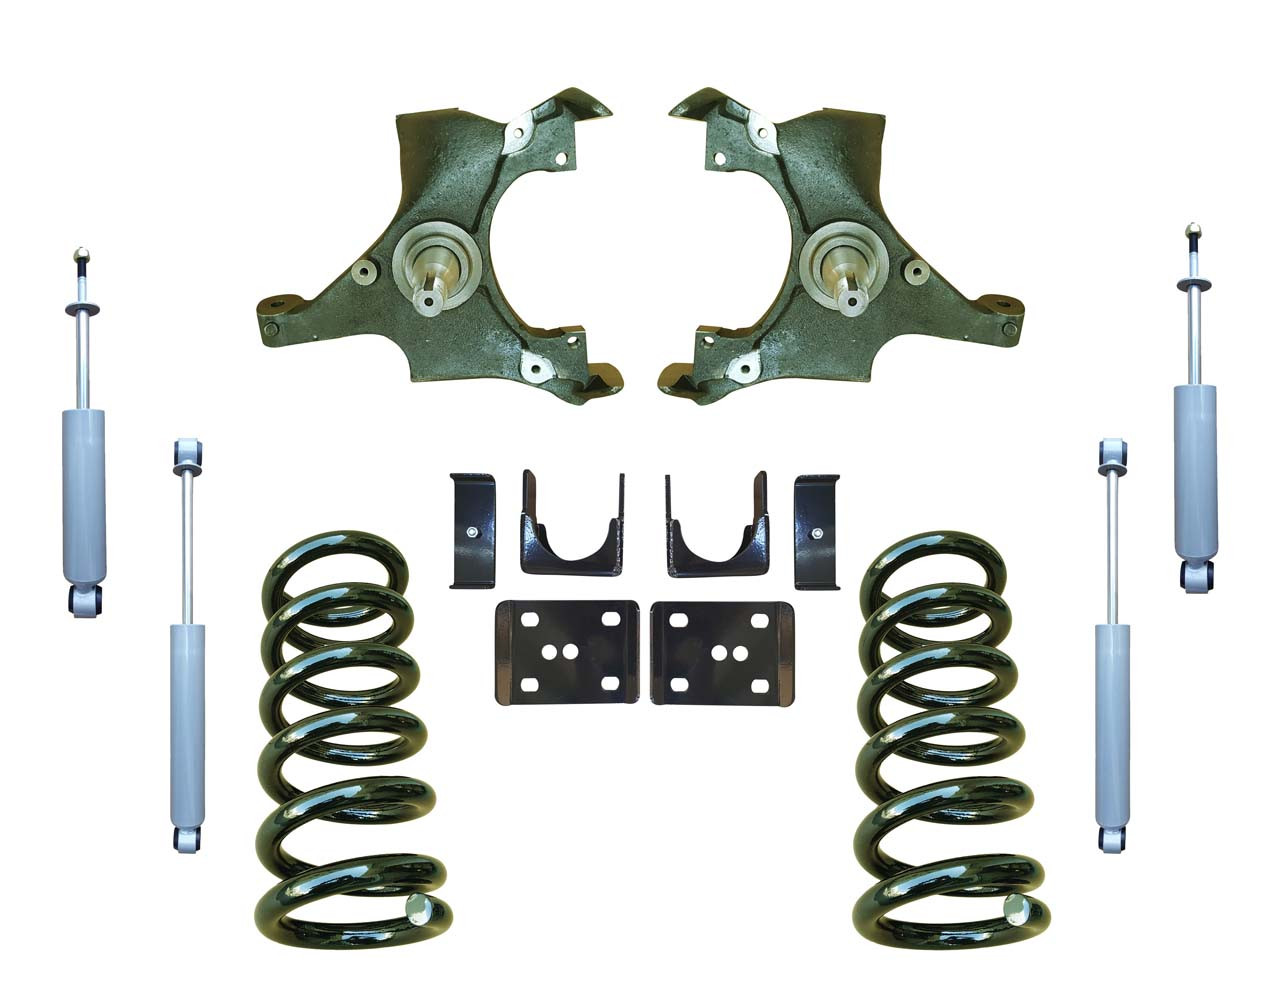 5/6 Lowering Spindle Drop Kit and Drop Shocks for 88-91 C1500 Std Cab